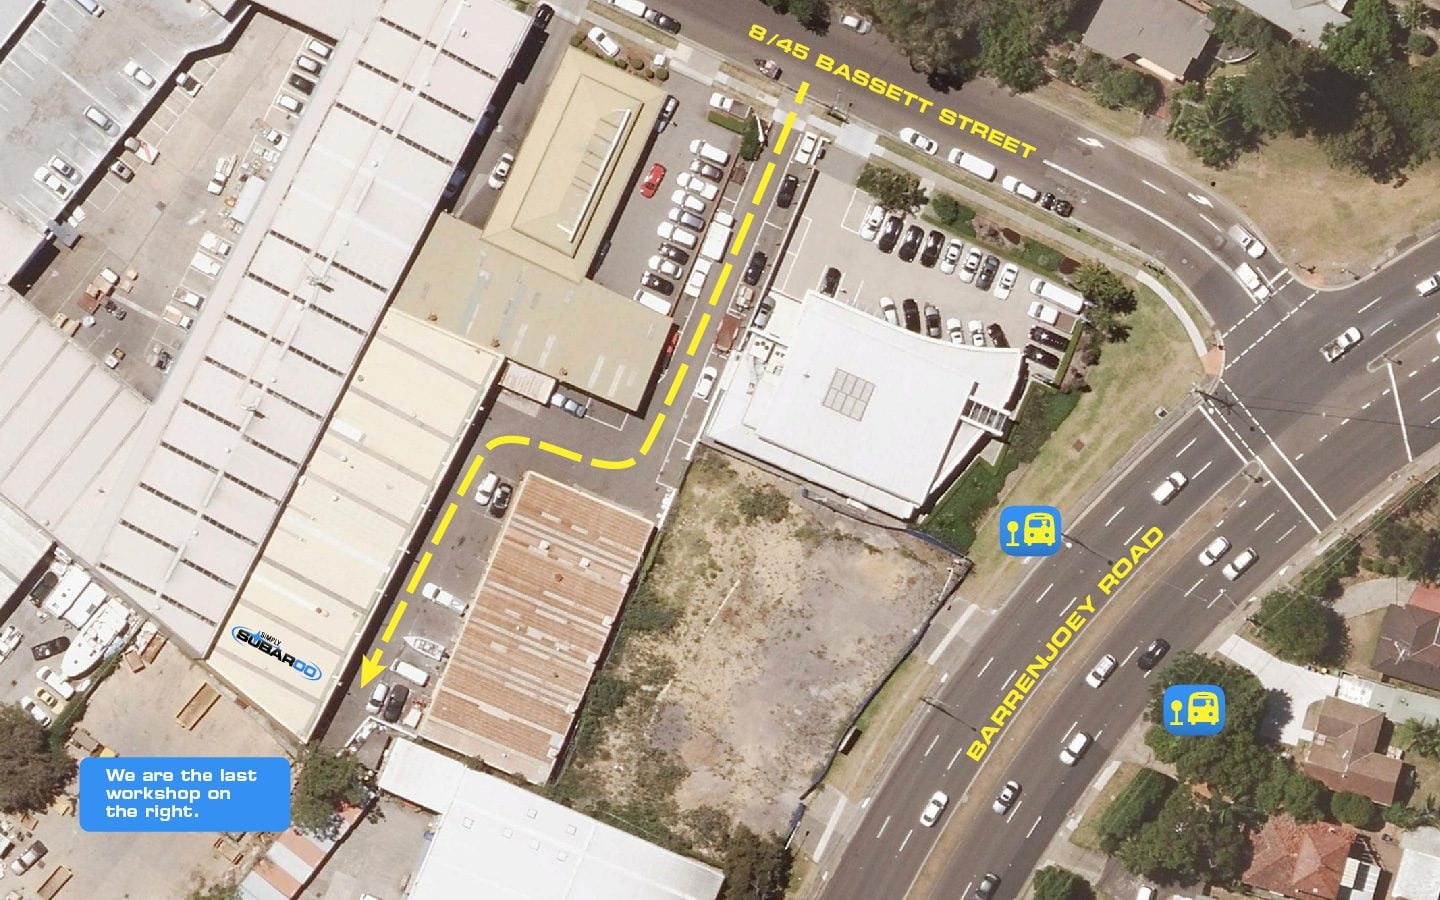 Simply Subaroo Workshop Aerial View Location Map with Overlaid Directions